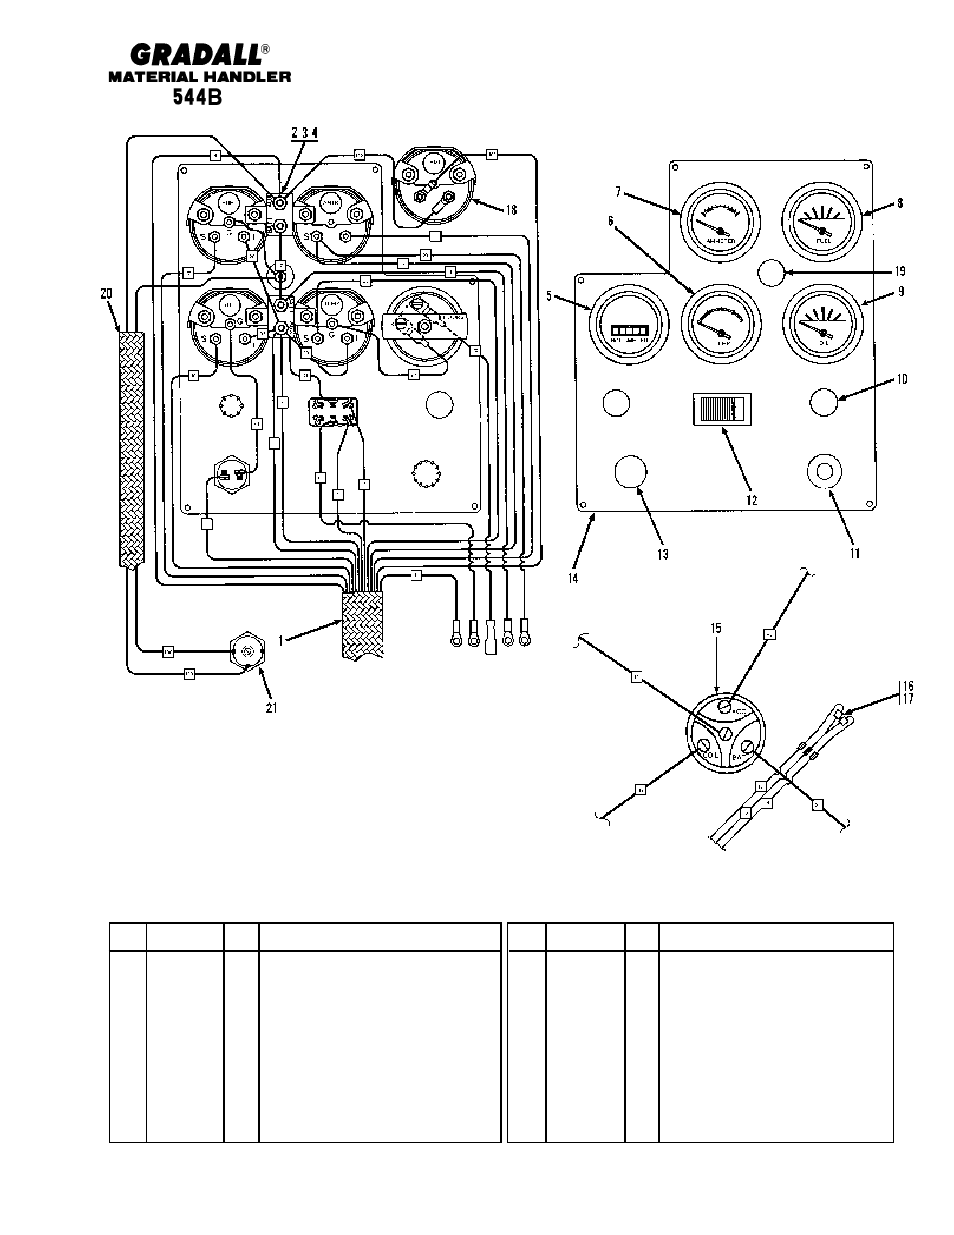 Mercedes R500 Fuse Box Diagram. Mercedes. Auto Wiring Diagram